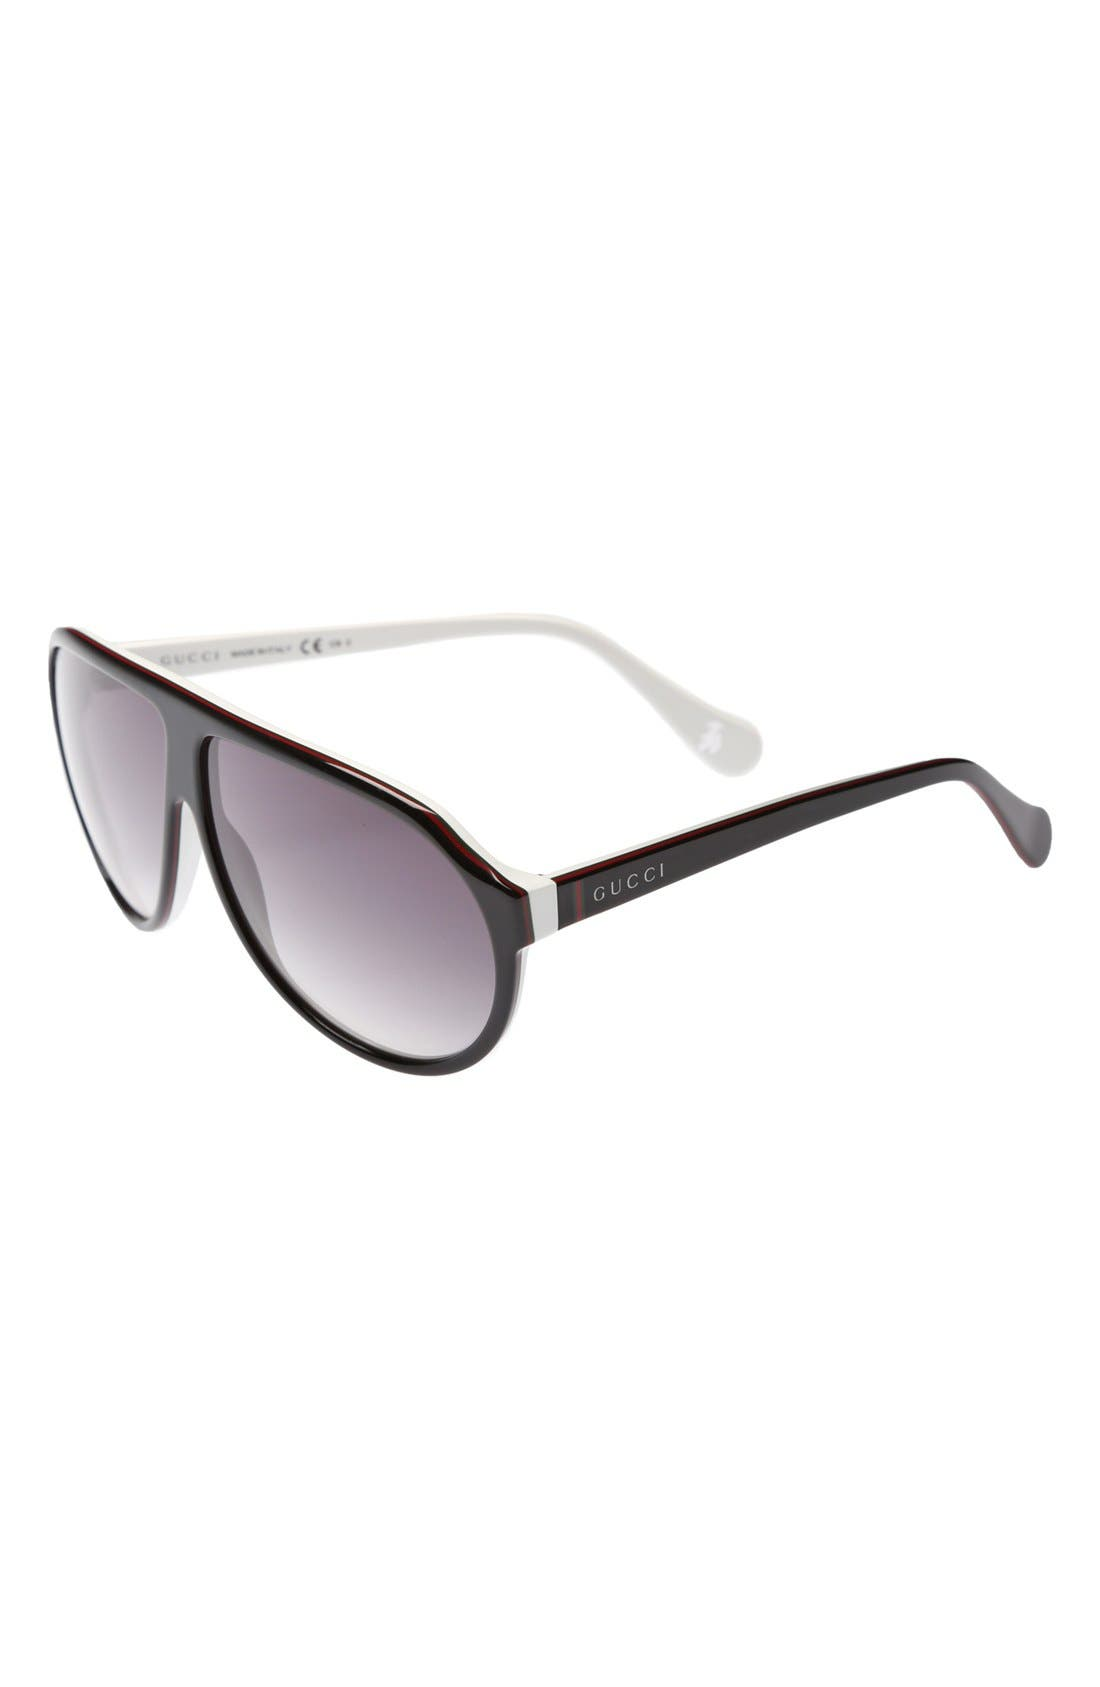 Main Image - Gucci Aviator Sunglasses (Kids)